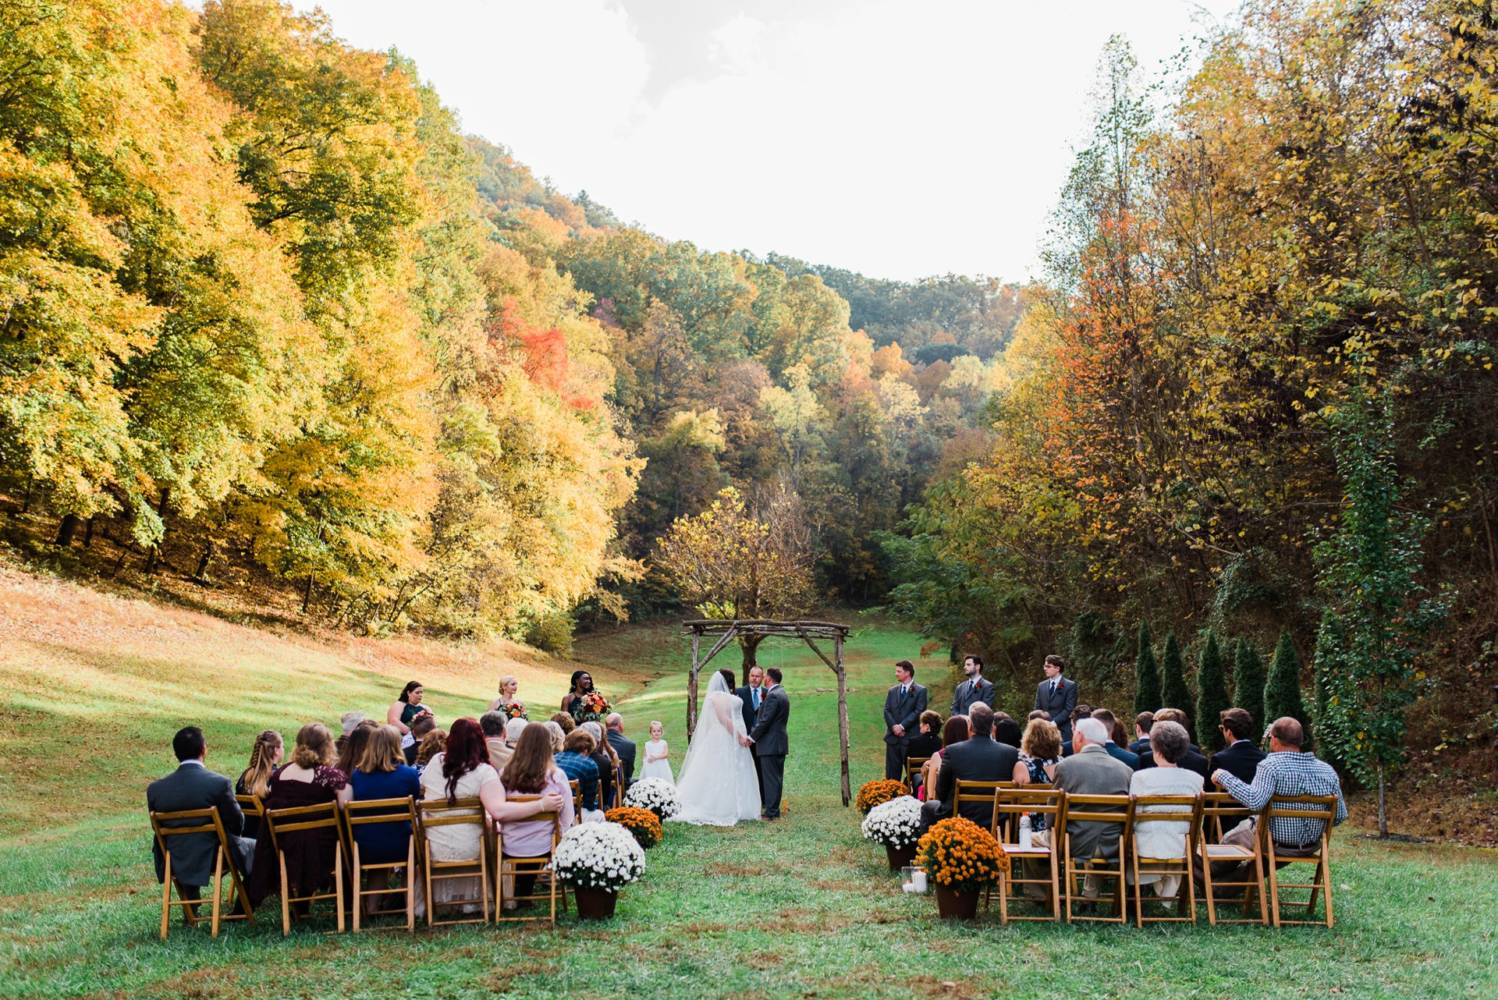 Autumn wedding outdoor ceremony